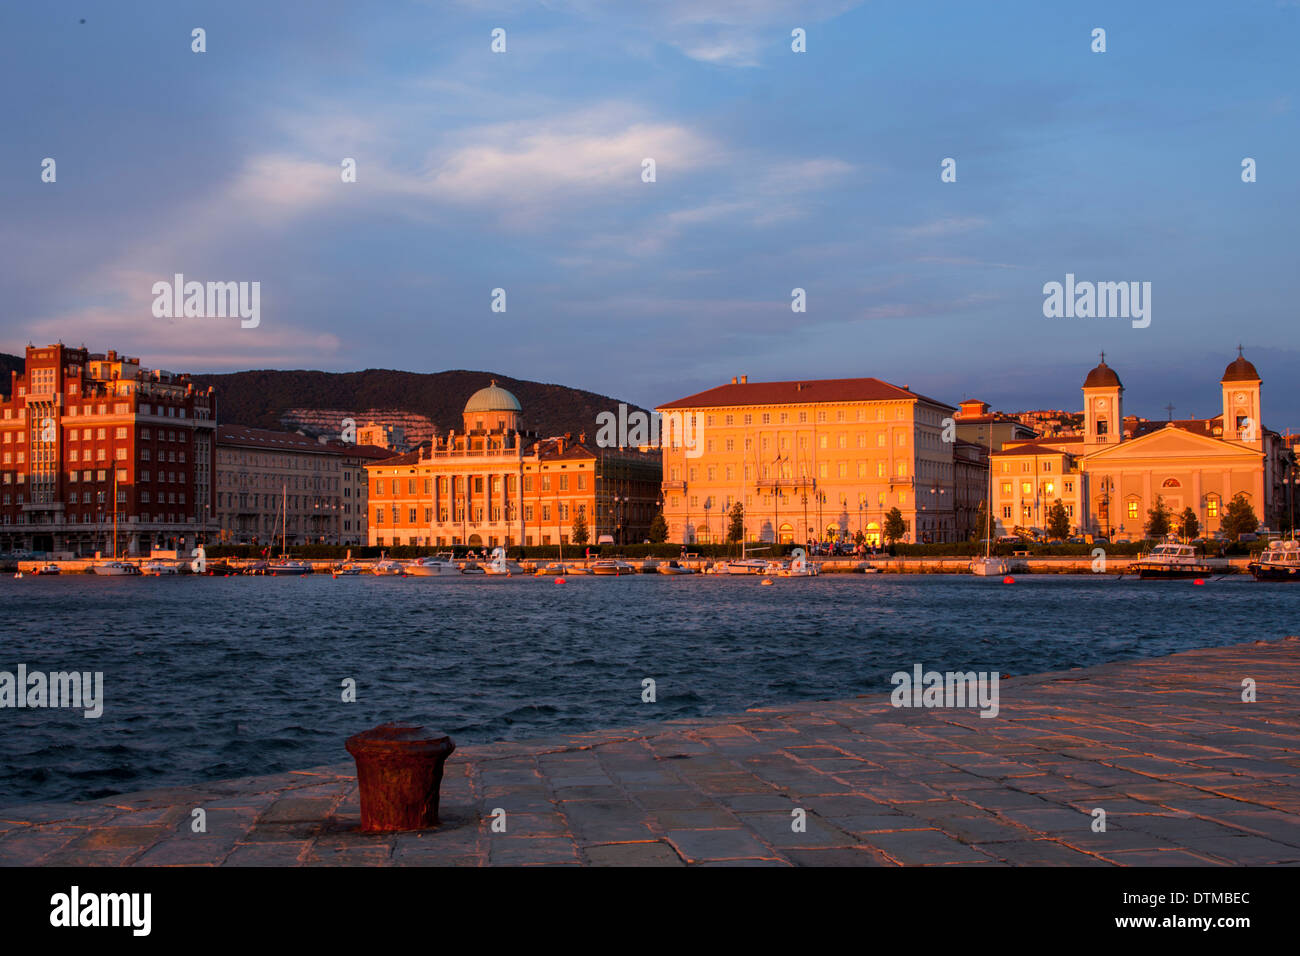 The beautiful city of Trieste planted in front of the Adriatic Sea - Stock Image